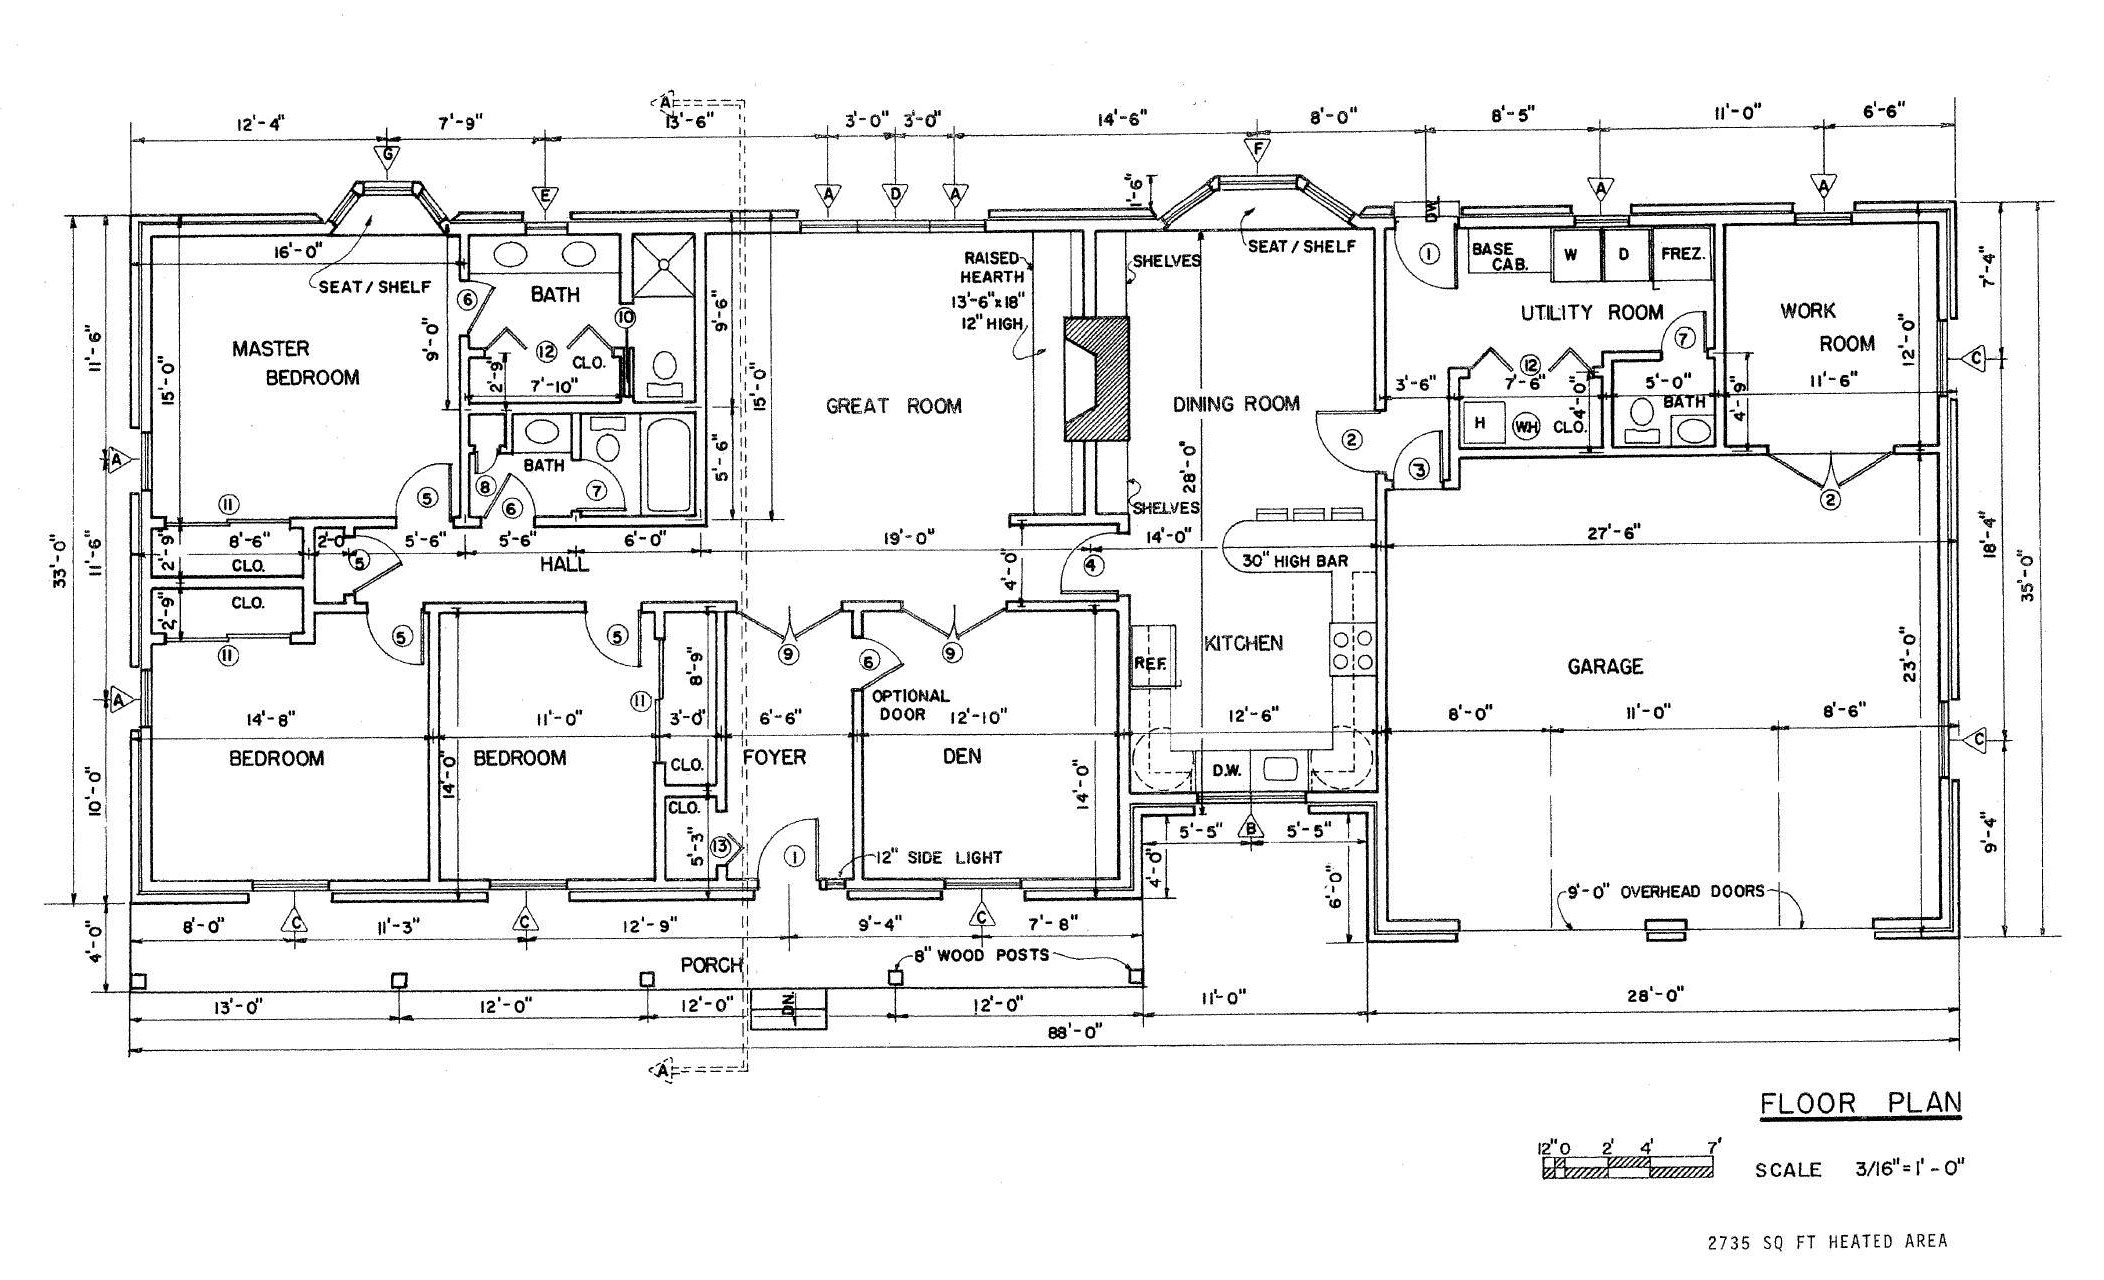 country style house floor plans country style home designs find house plans - Country House Floor Plans